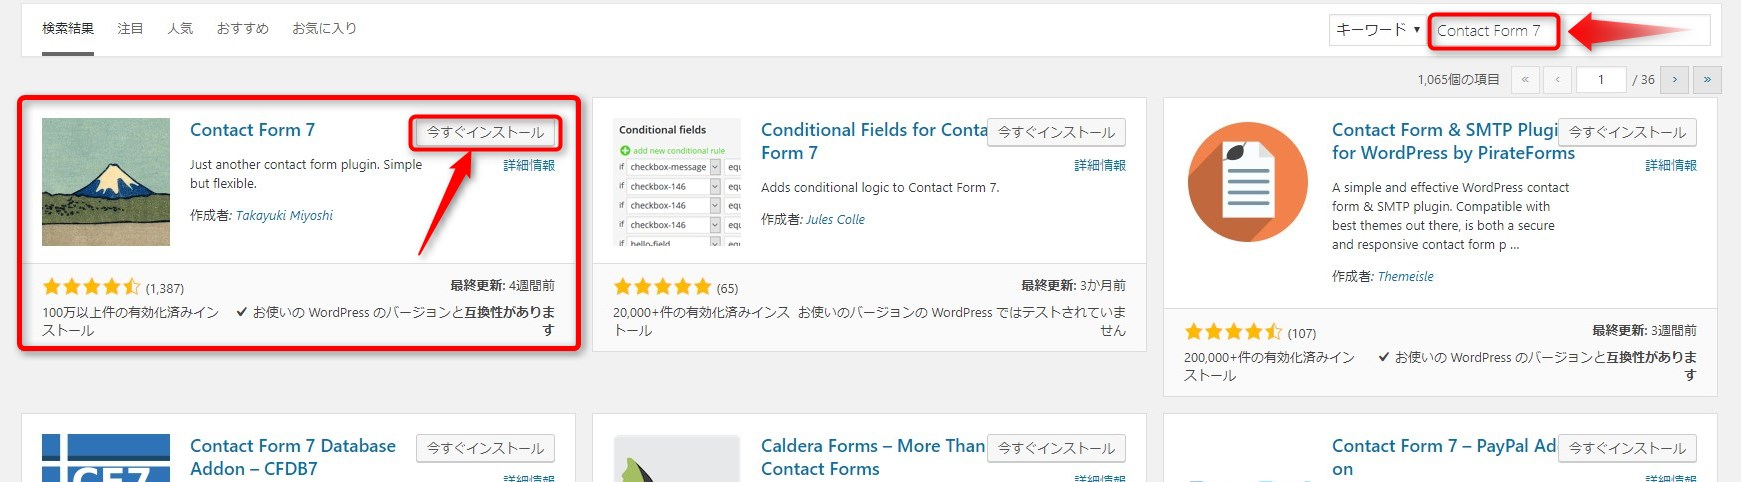 Contact Form 7インストール有効化